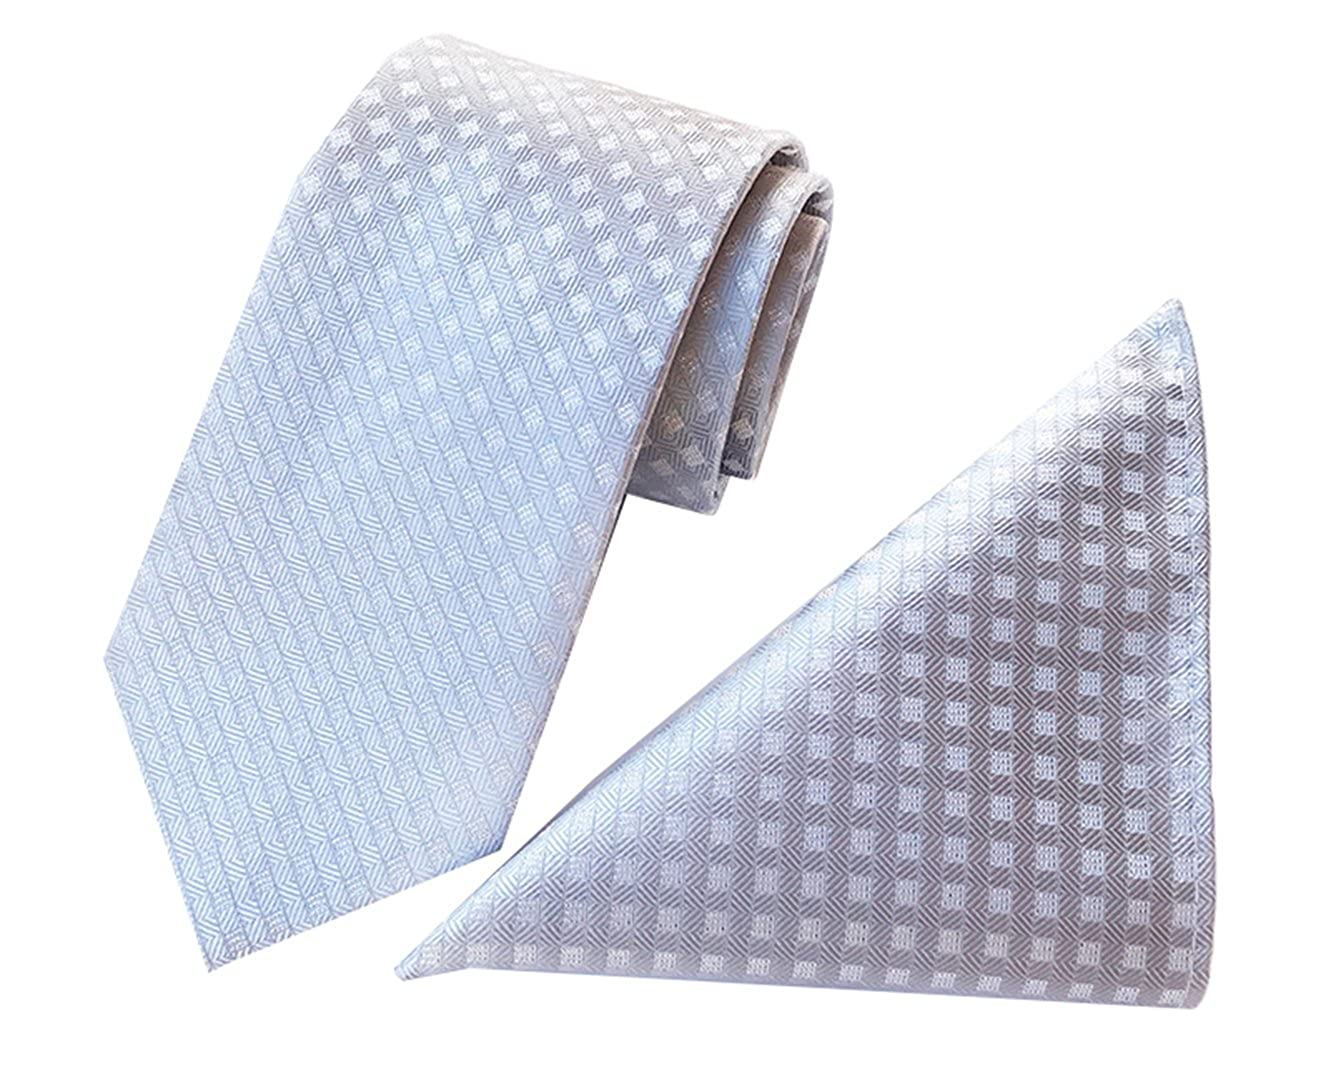 MENDENG Mens Classic Plaid Tie Pocket Square Silk Necktie Set Wedding Jacquard